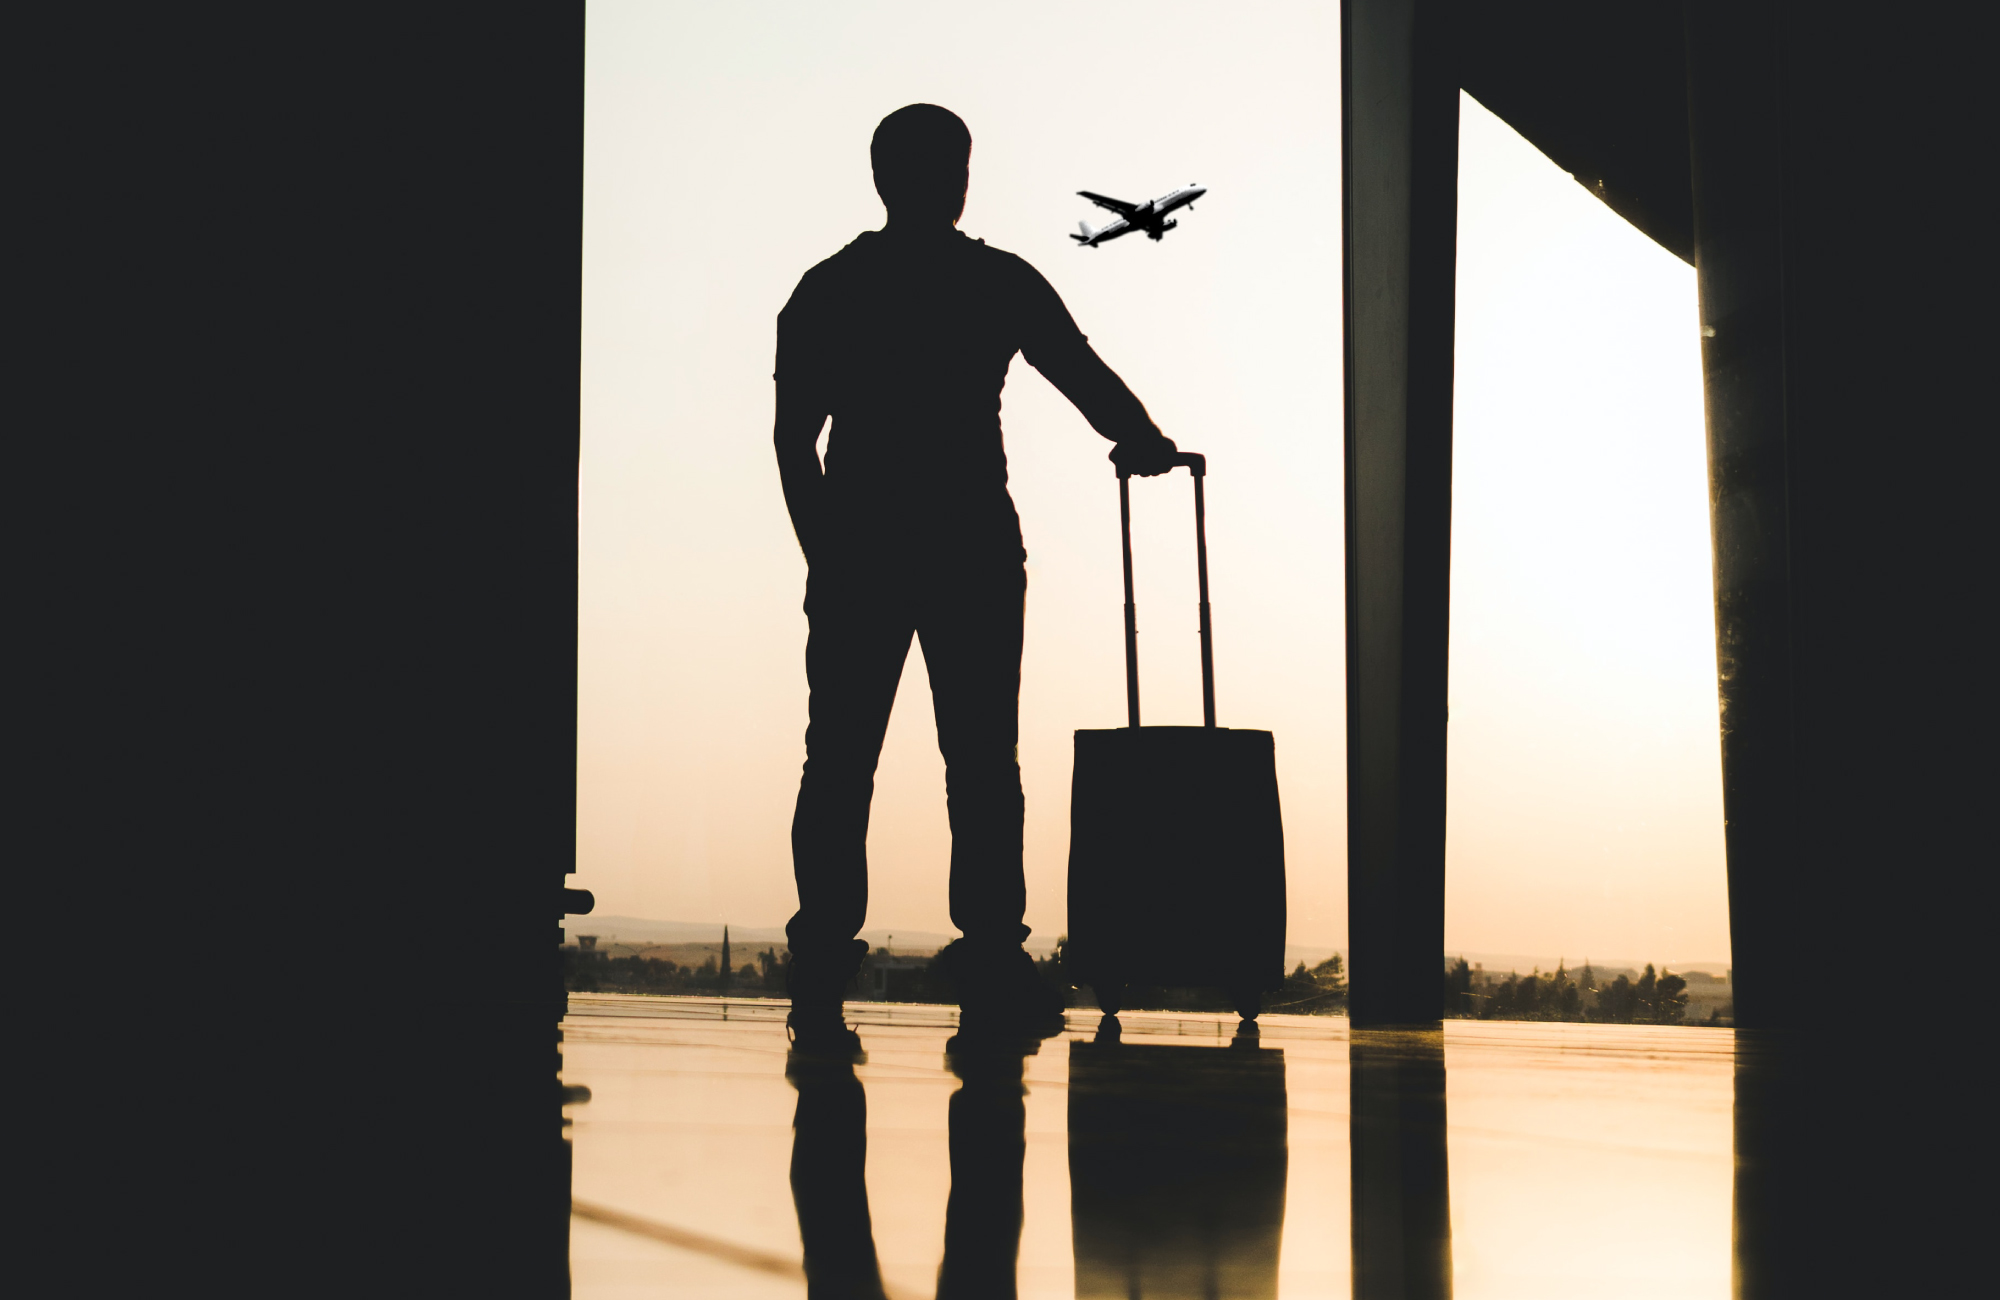 A traveller waits at an airport with their suitcase